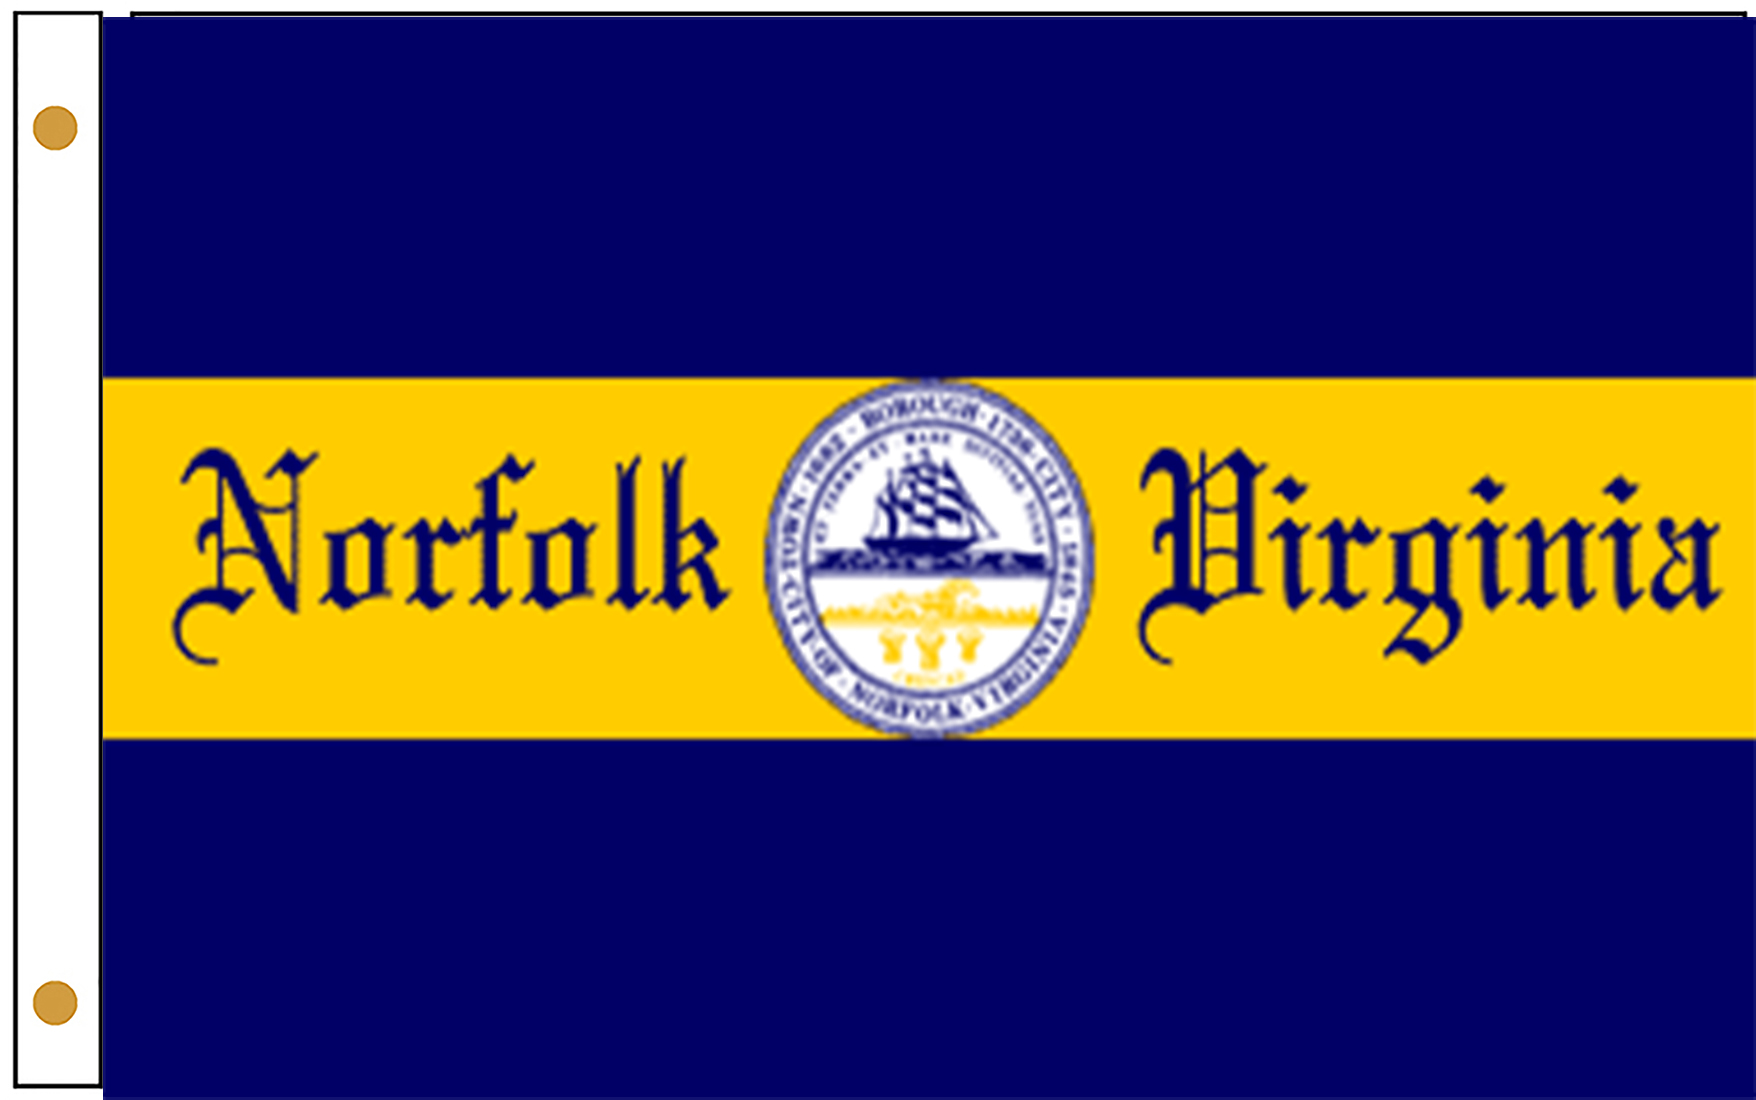 Norfolk VA Flags